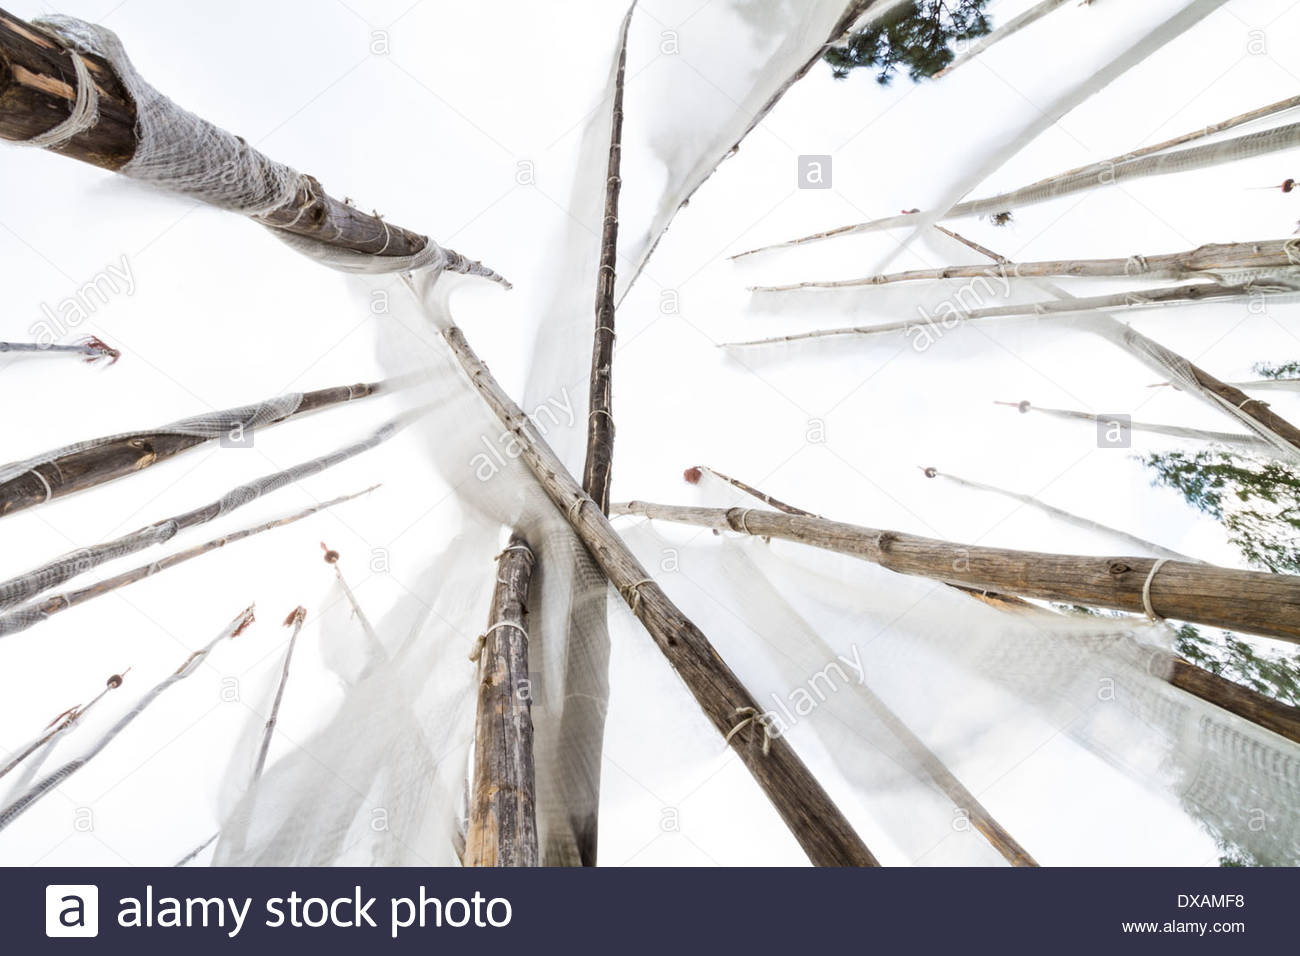 Looking up, Buddhist prayer flags flap in the wind in Punakha, Bhutan - Stock Image